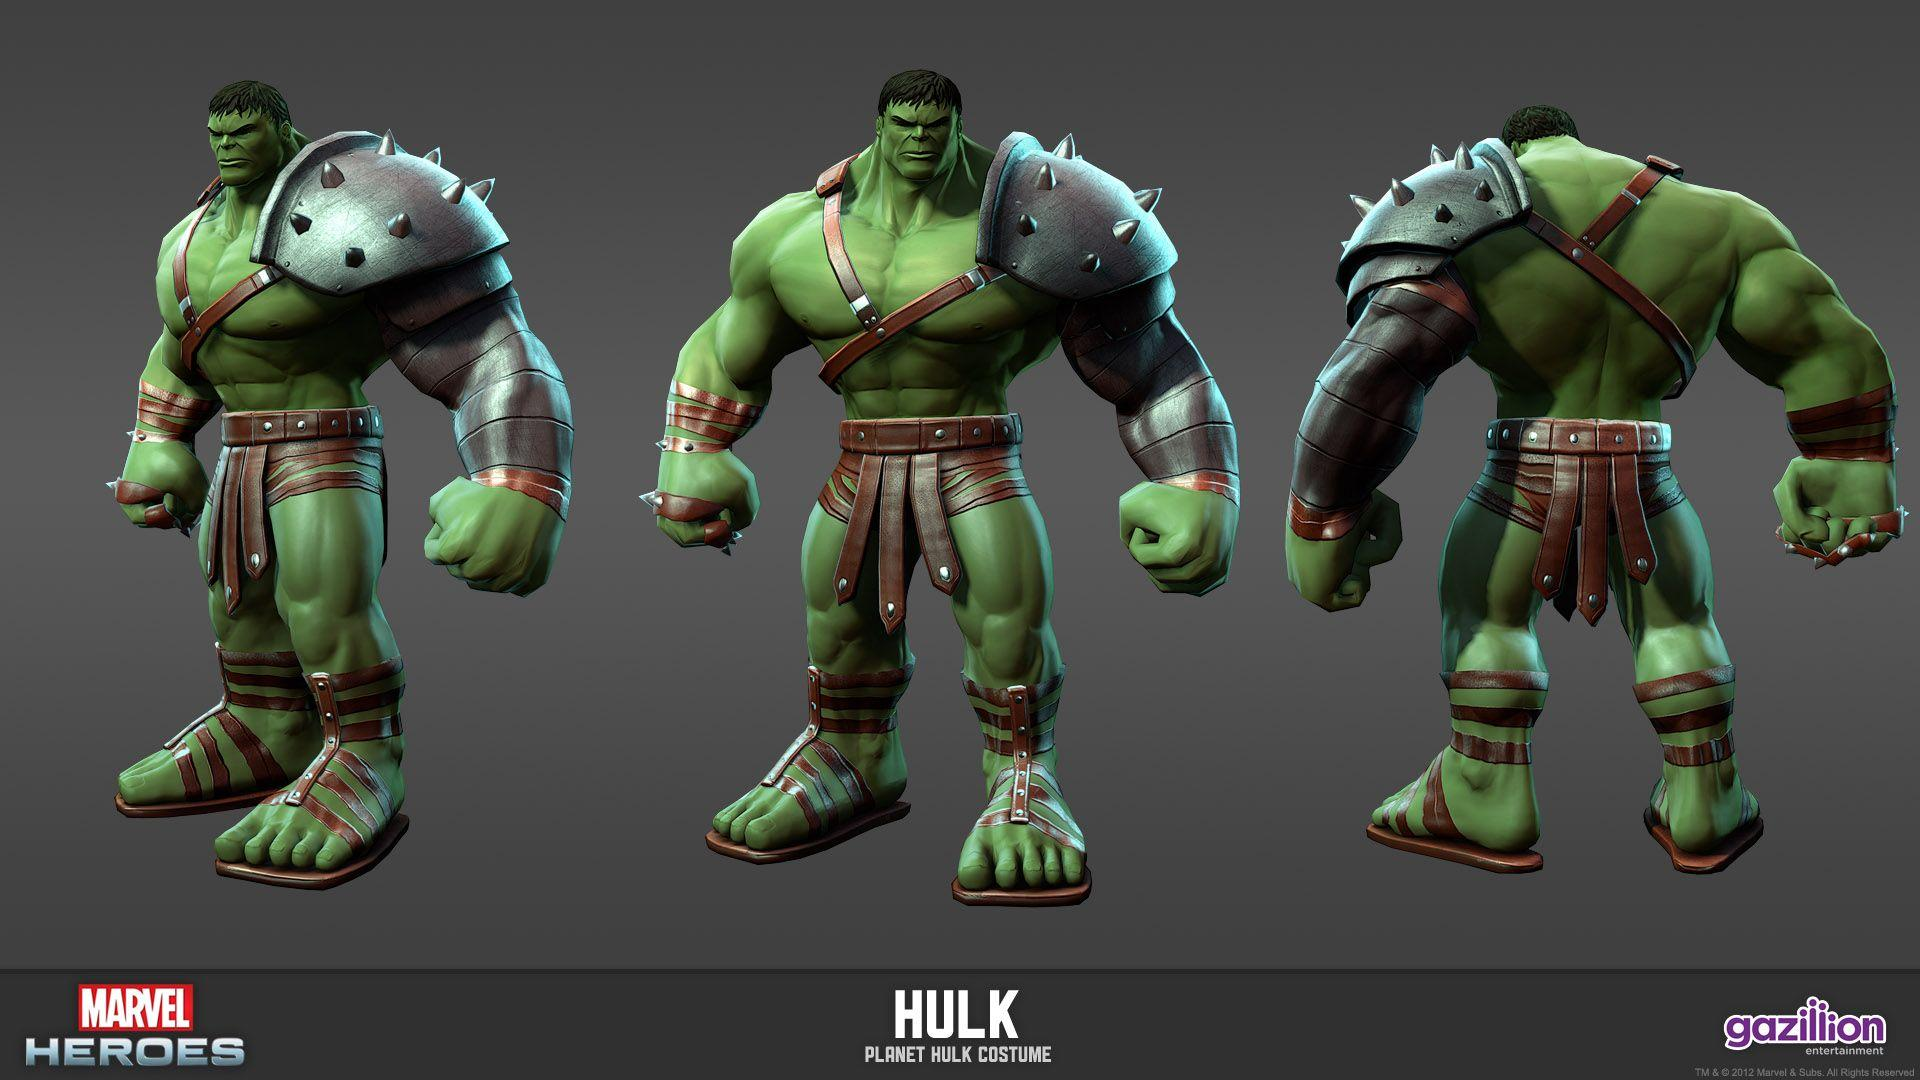 Marvel Heroes Hulk Wallpapers - Wallpaper Cave